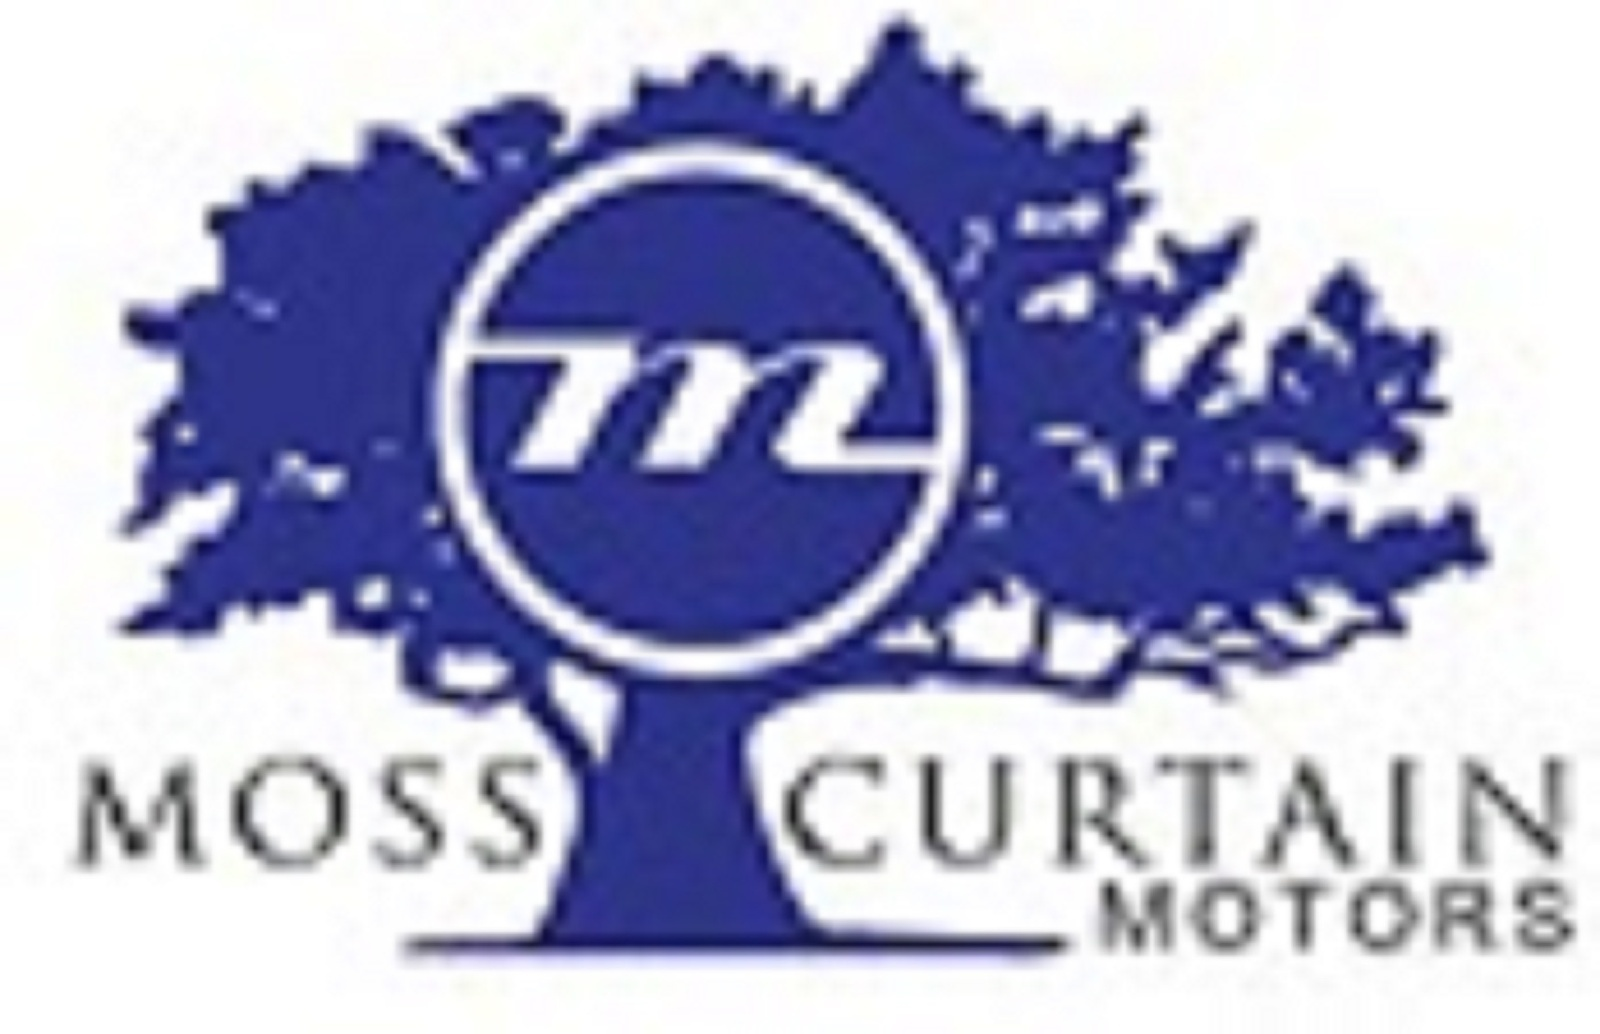 Nissan Dublin Ga >> Moss Curtain Motors Savannah, LLC. - Savannah, GA: Read ...